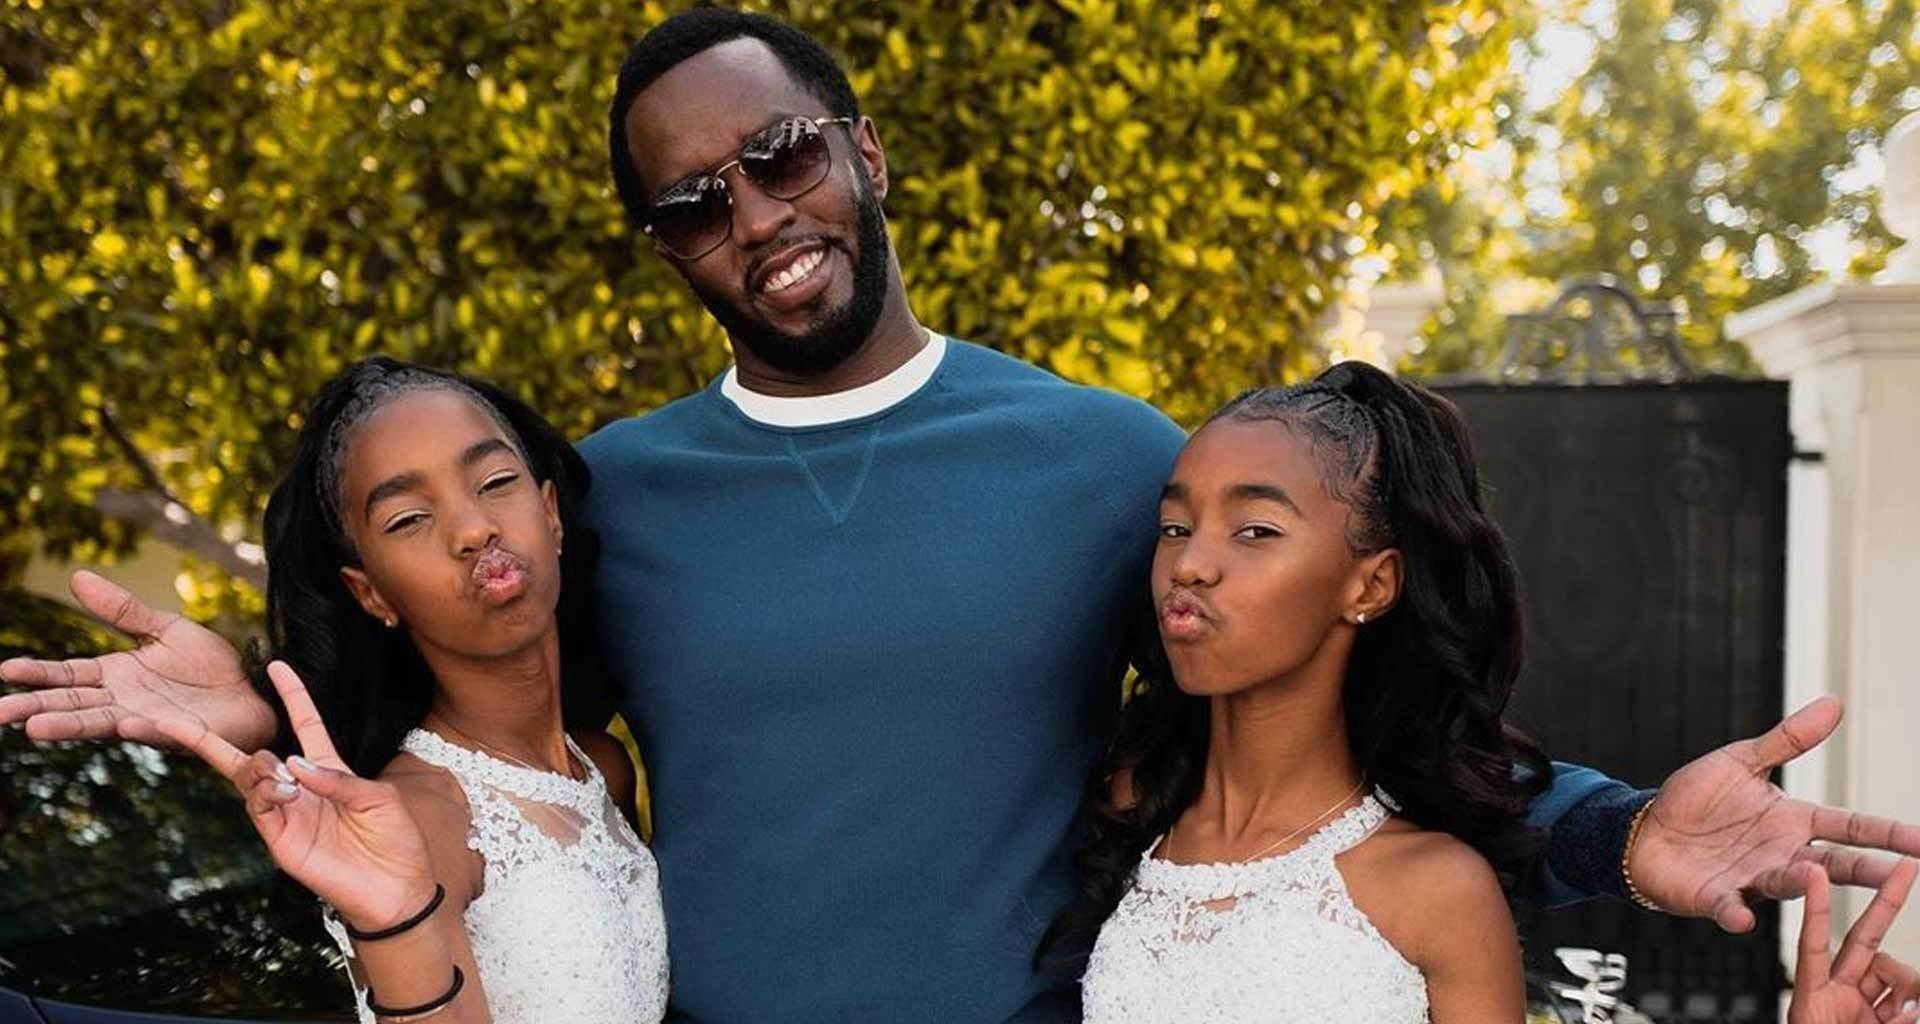 Diddy Is The Proudest Dad At His Girls' Graduation - Quincy Is Also Excited For His 'Little Agels'